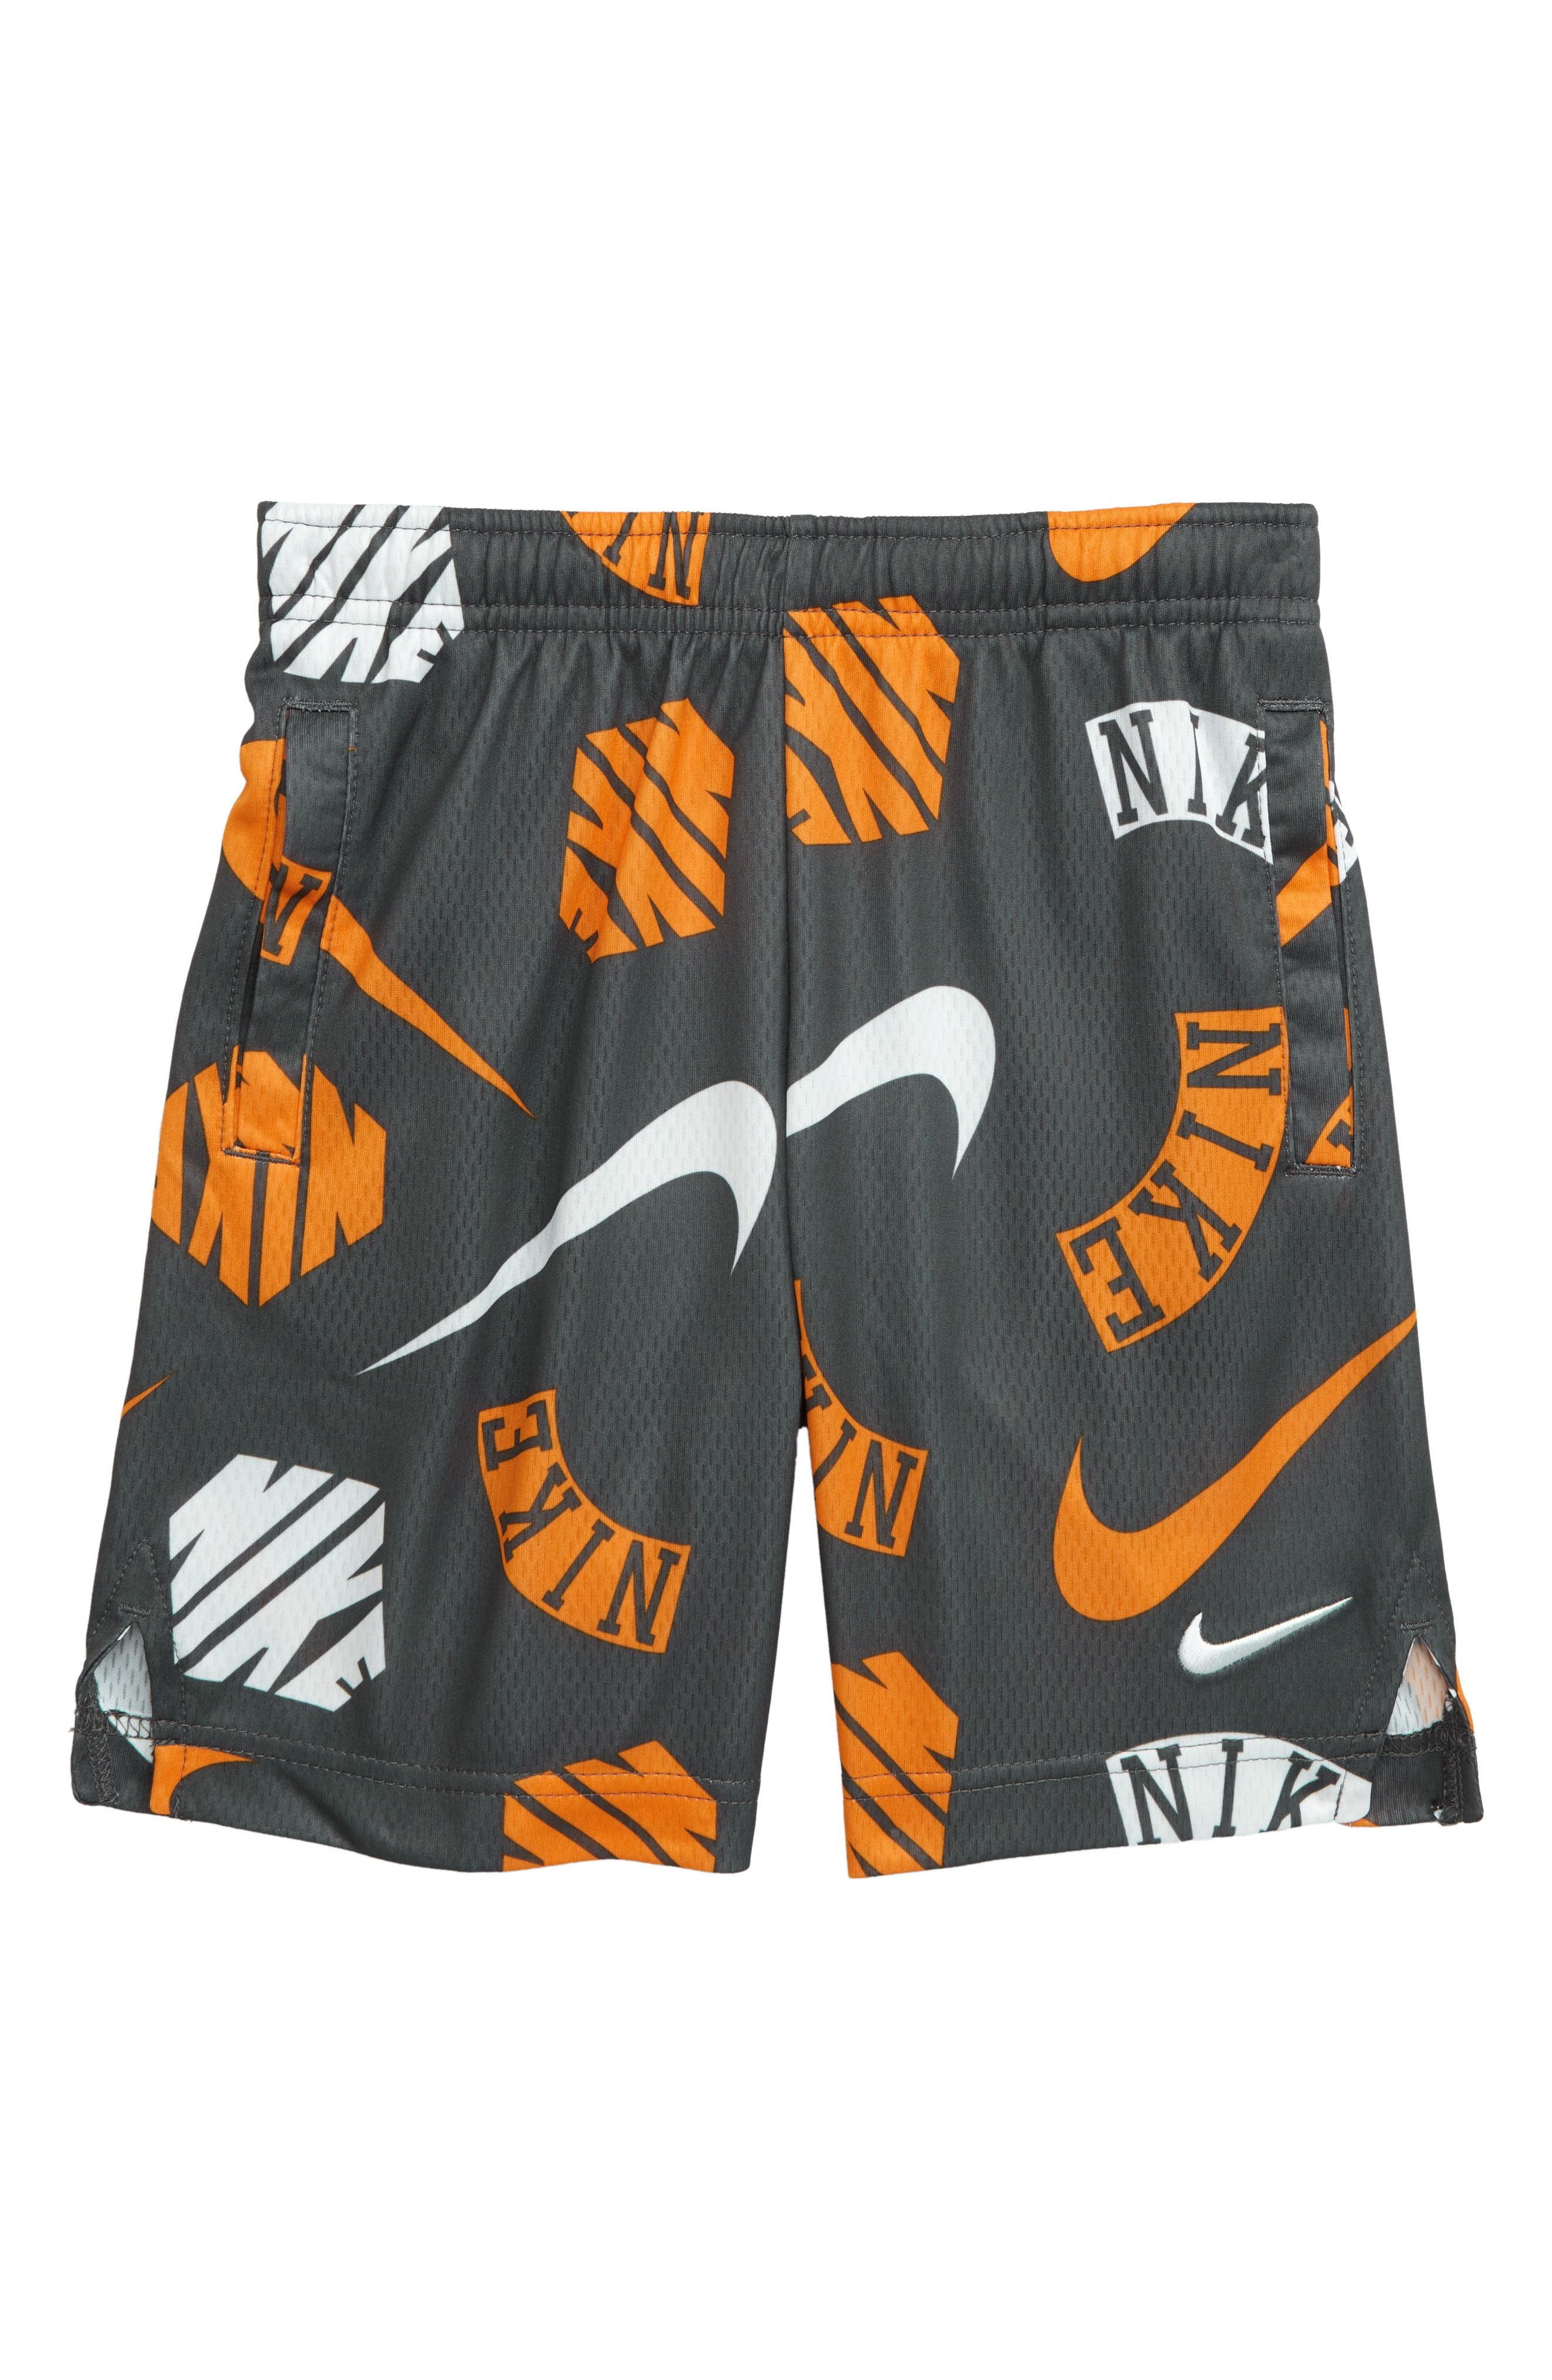 Boys Nike Dry Print Athletic Shorts Size 5  Grey